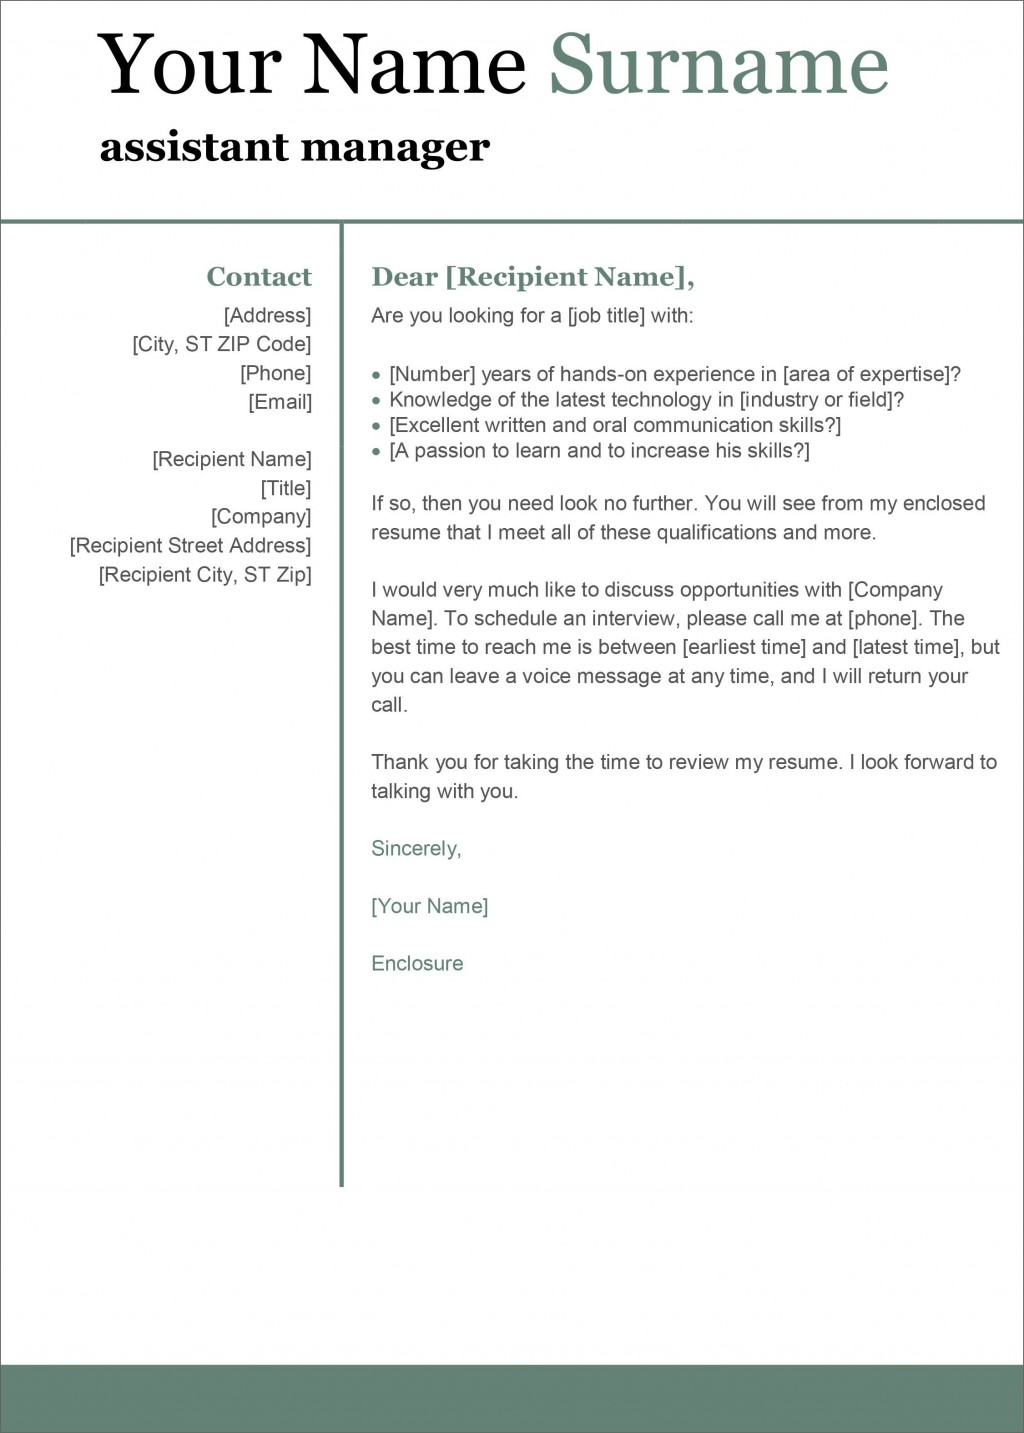 005 Impressive Resume Cover Letter Template Word Free Concept Large